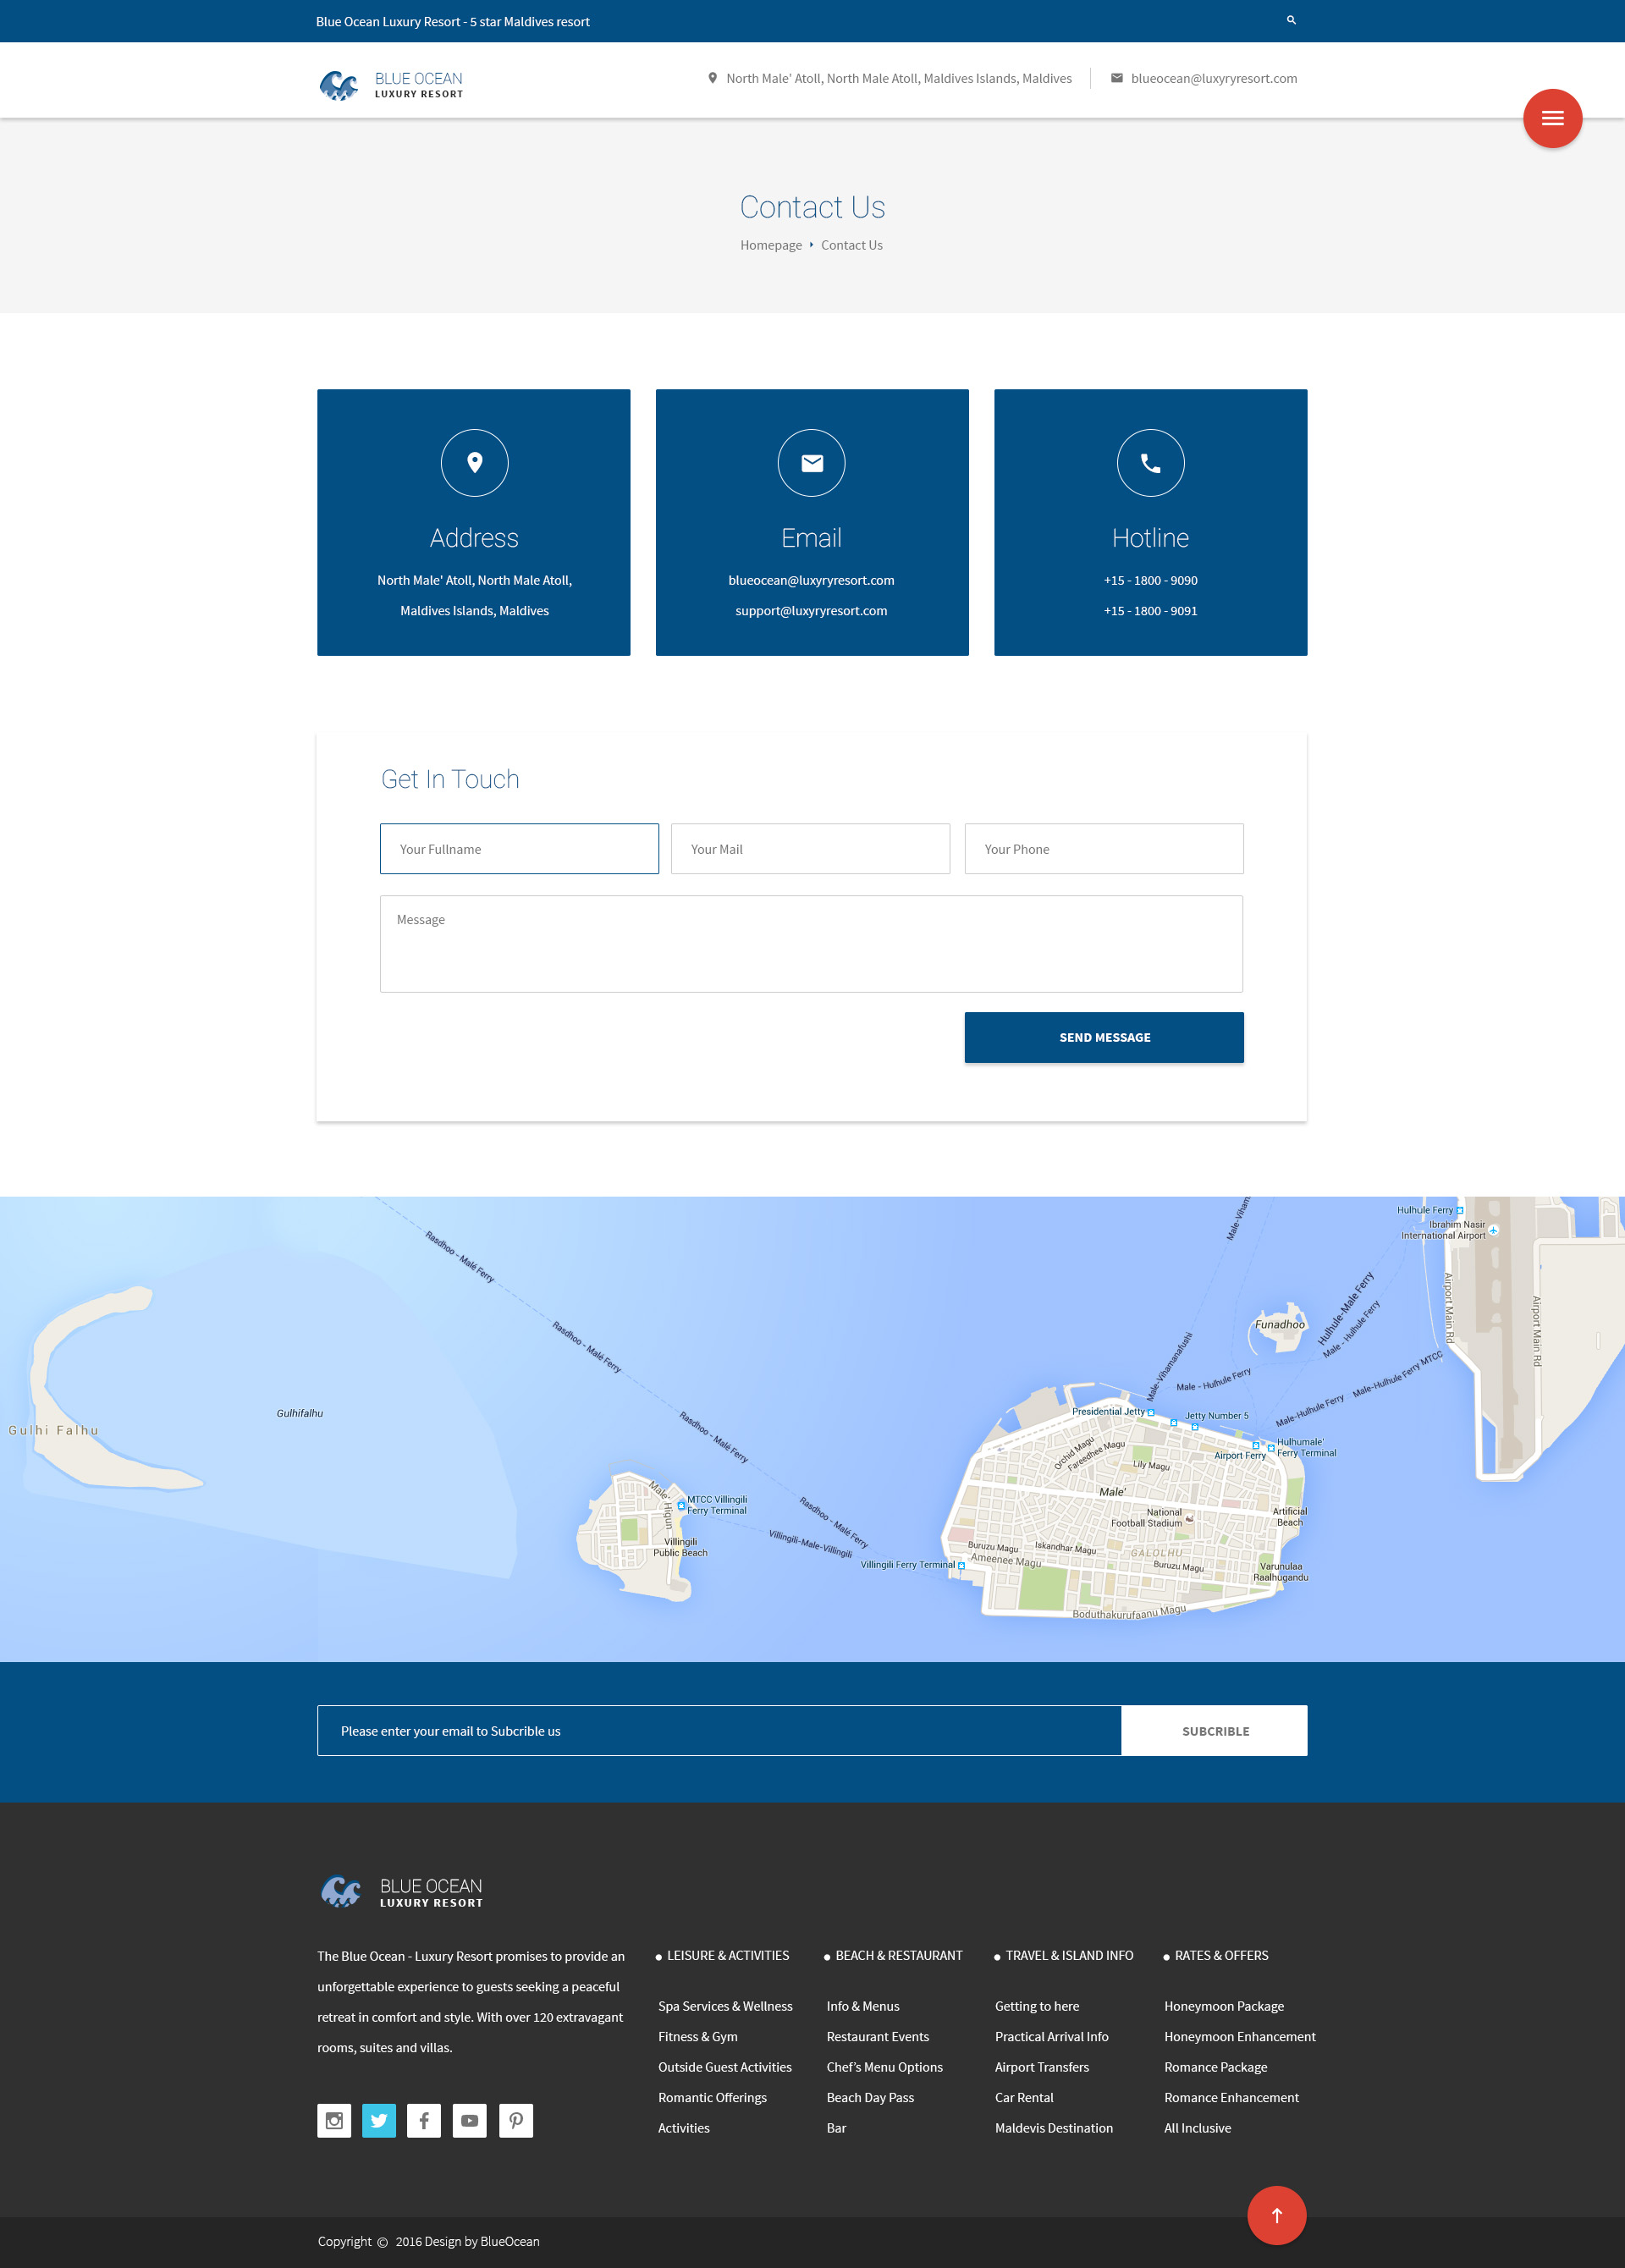 Blue ocean resort hotel psd template by pixartthemes themeforest blue ocean resort hotel psd template pronofoot35fo Choice Image